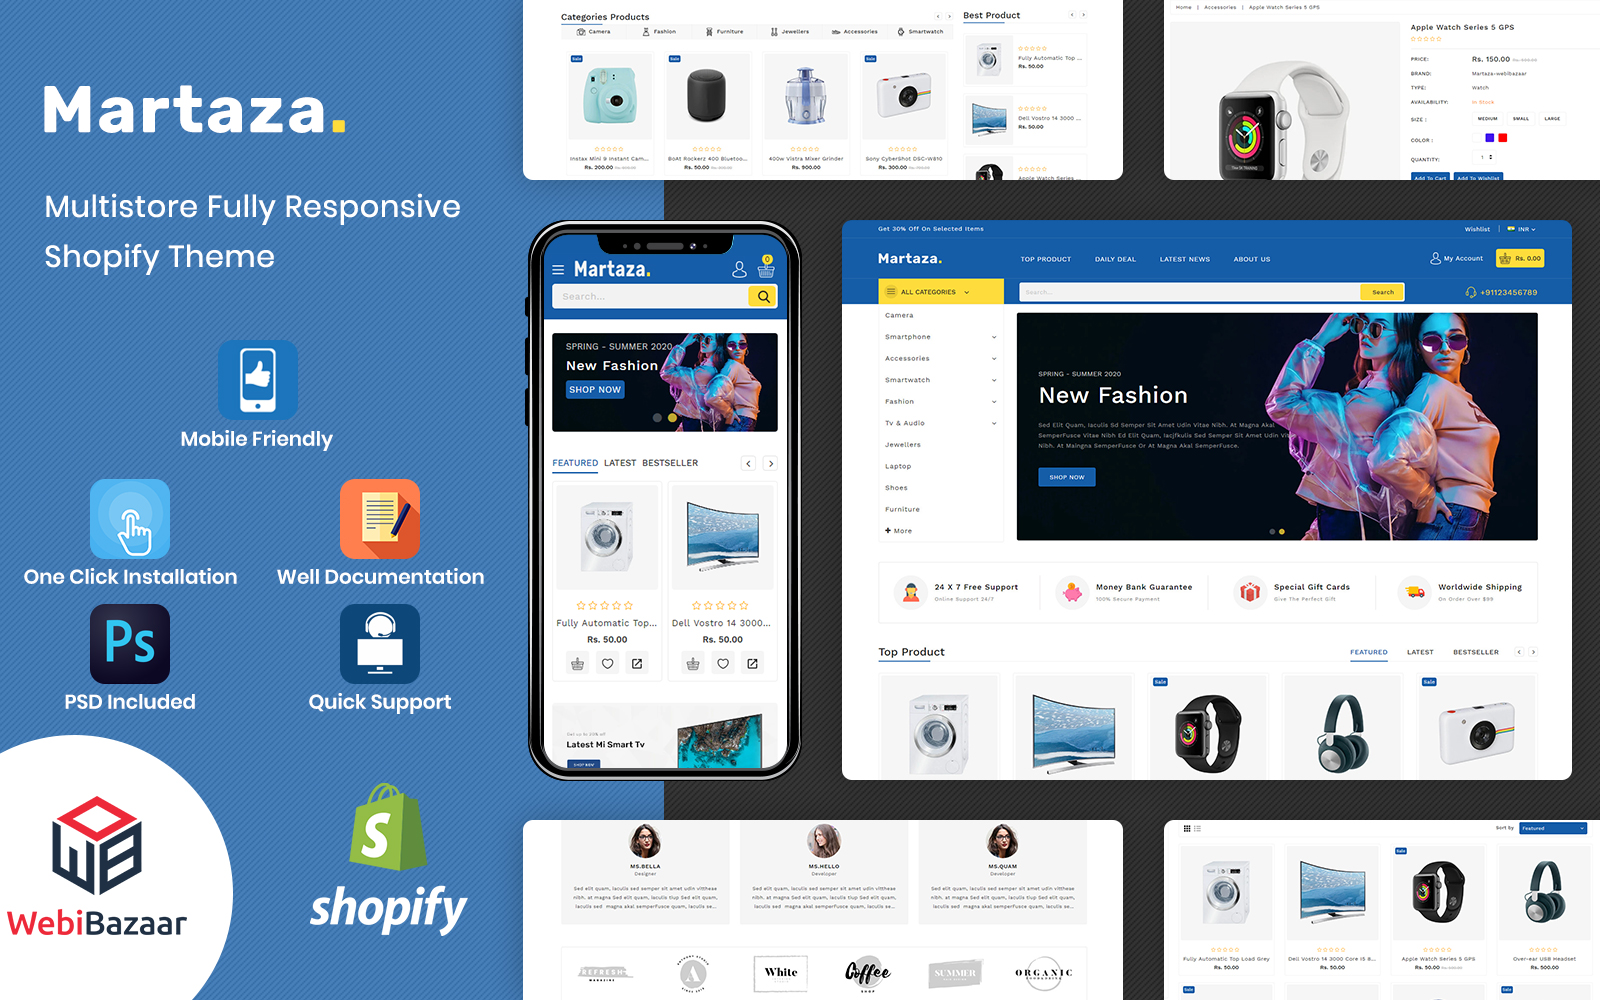 Martaza - Multipurpose Modern Shopify Theme